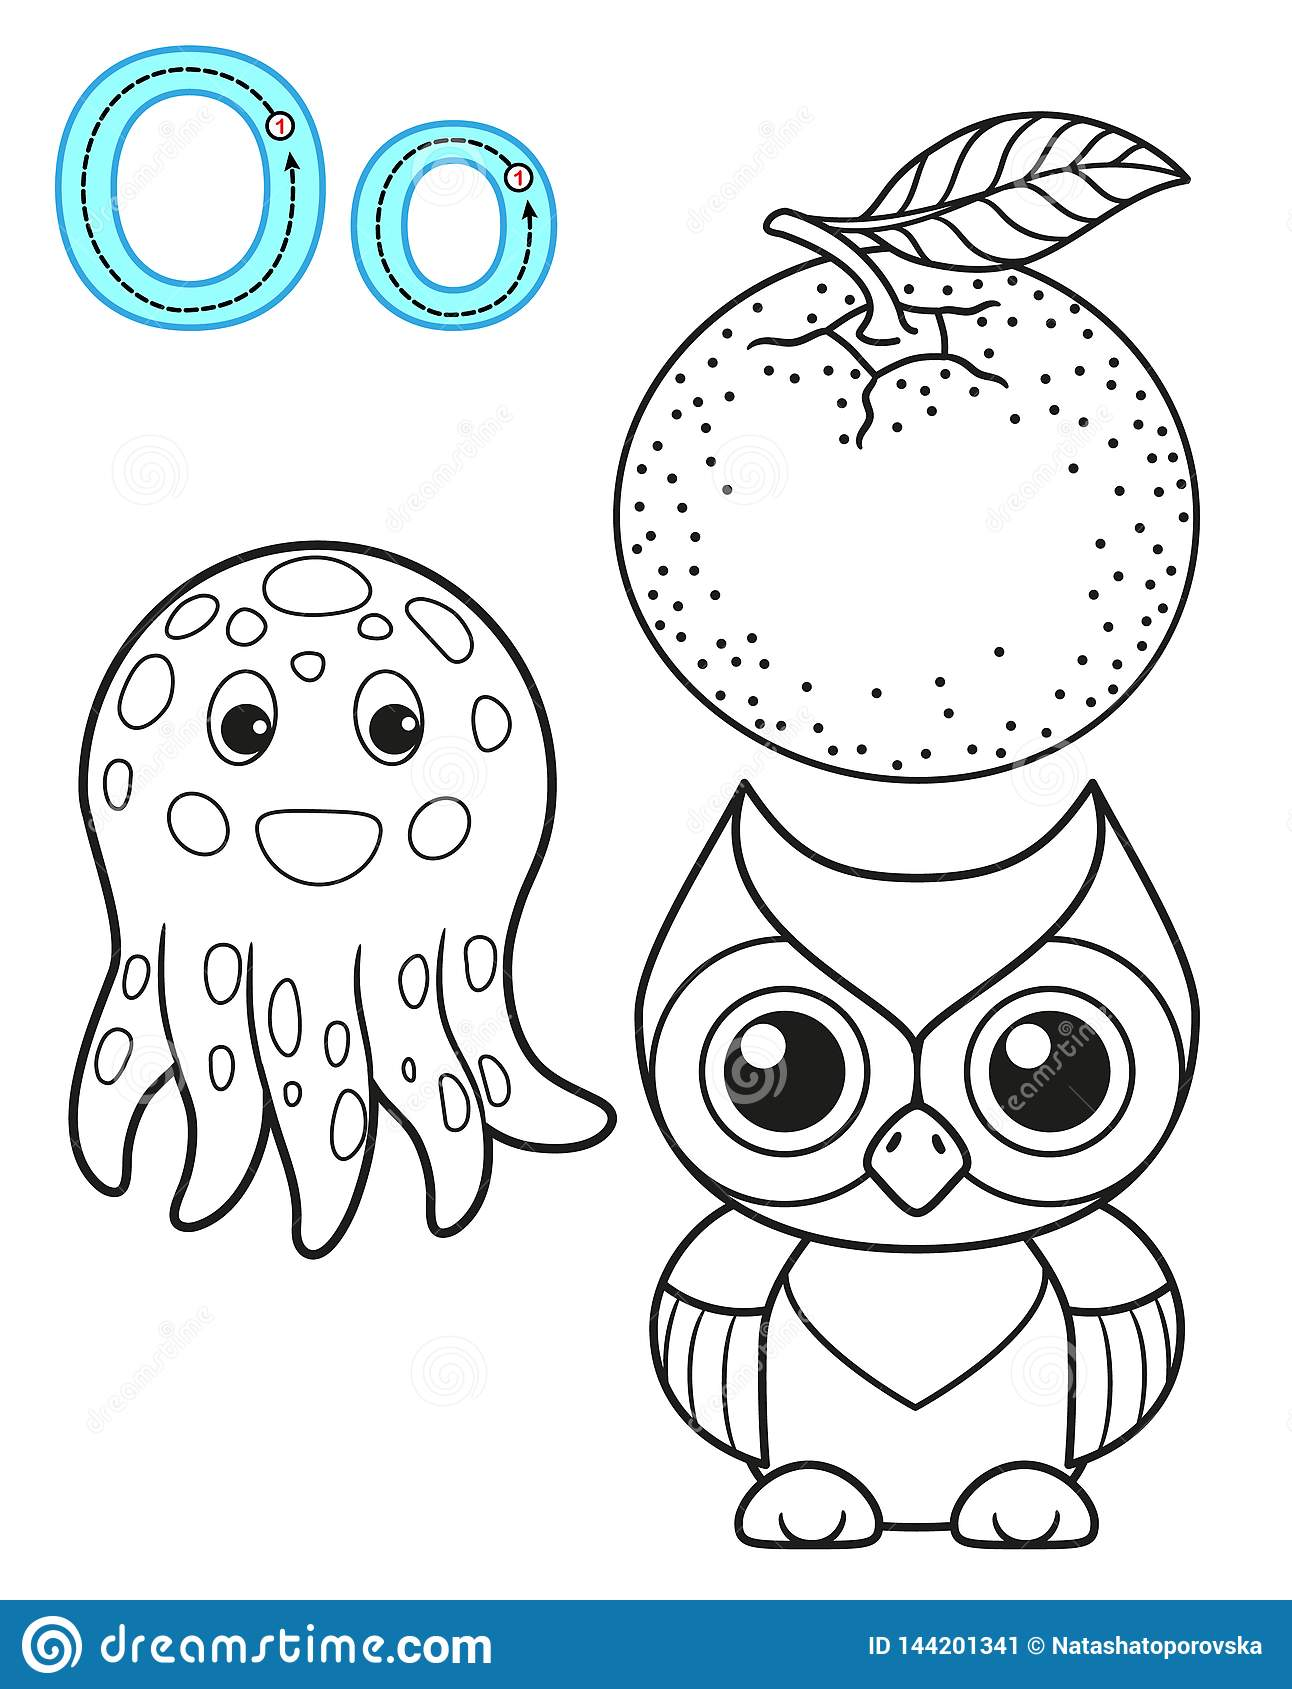 Printable Coloring Page For Kindergarten And Preschool ... | printable coloring pages for kindergarten